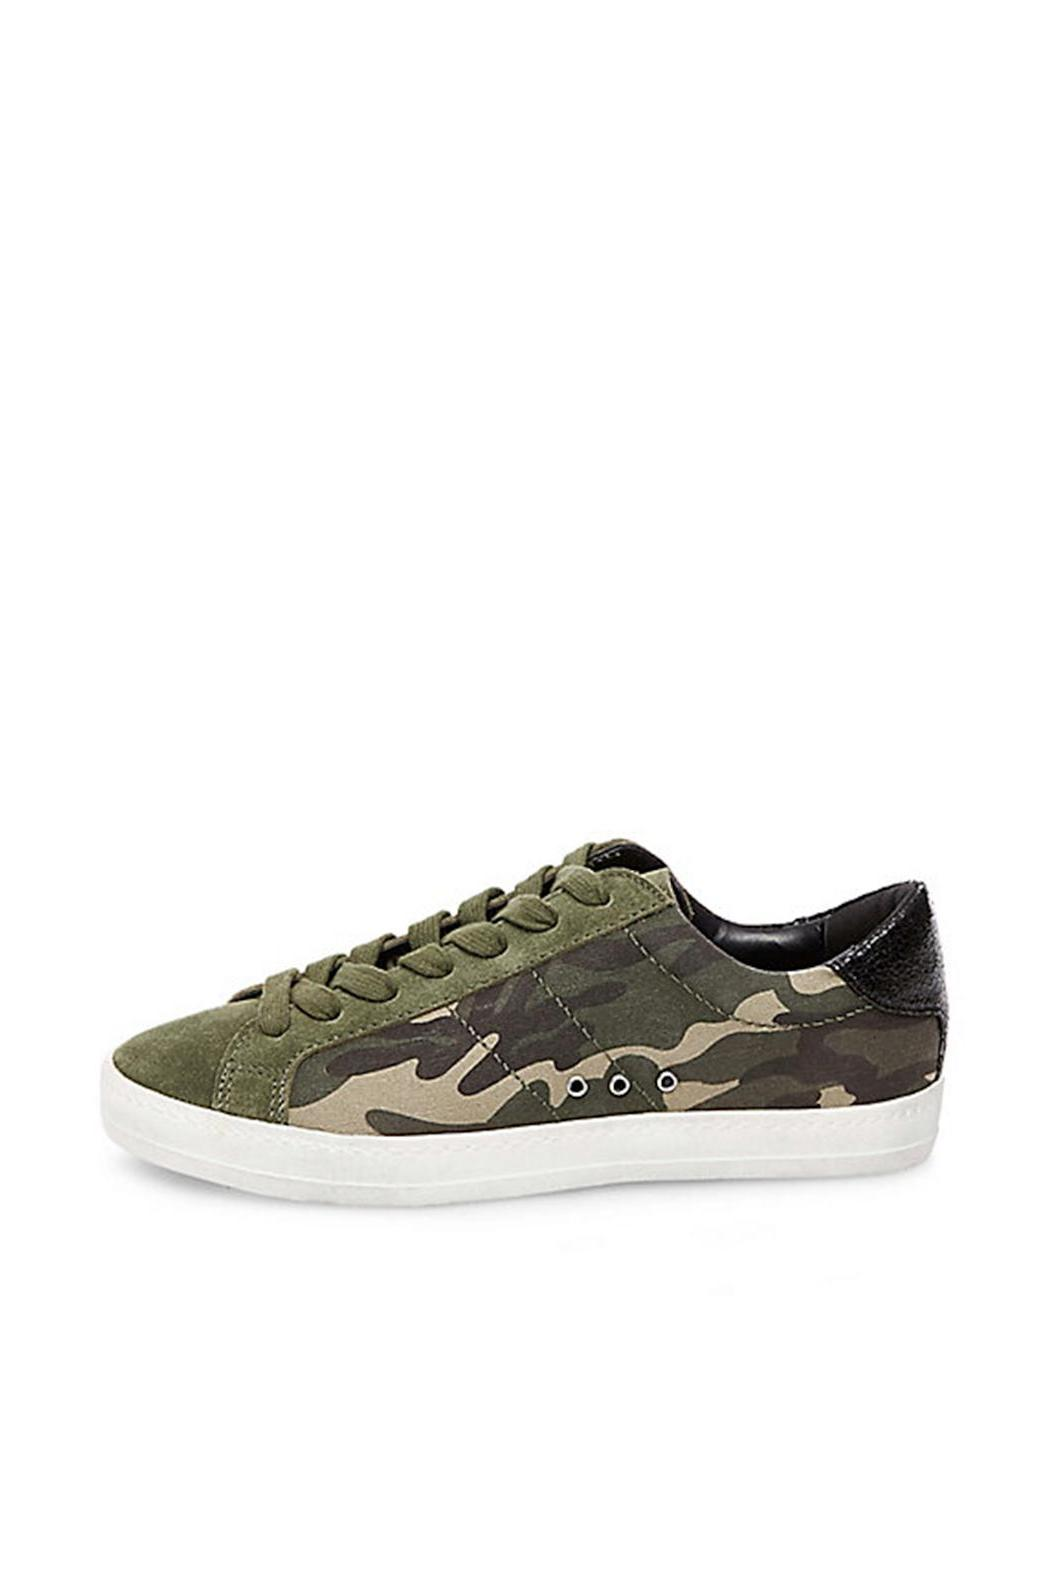 f753bed22a0 Steve Madden Blast Camo Sneaker from Vermont by green envy — Shoptiques